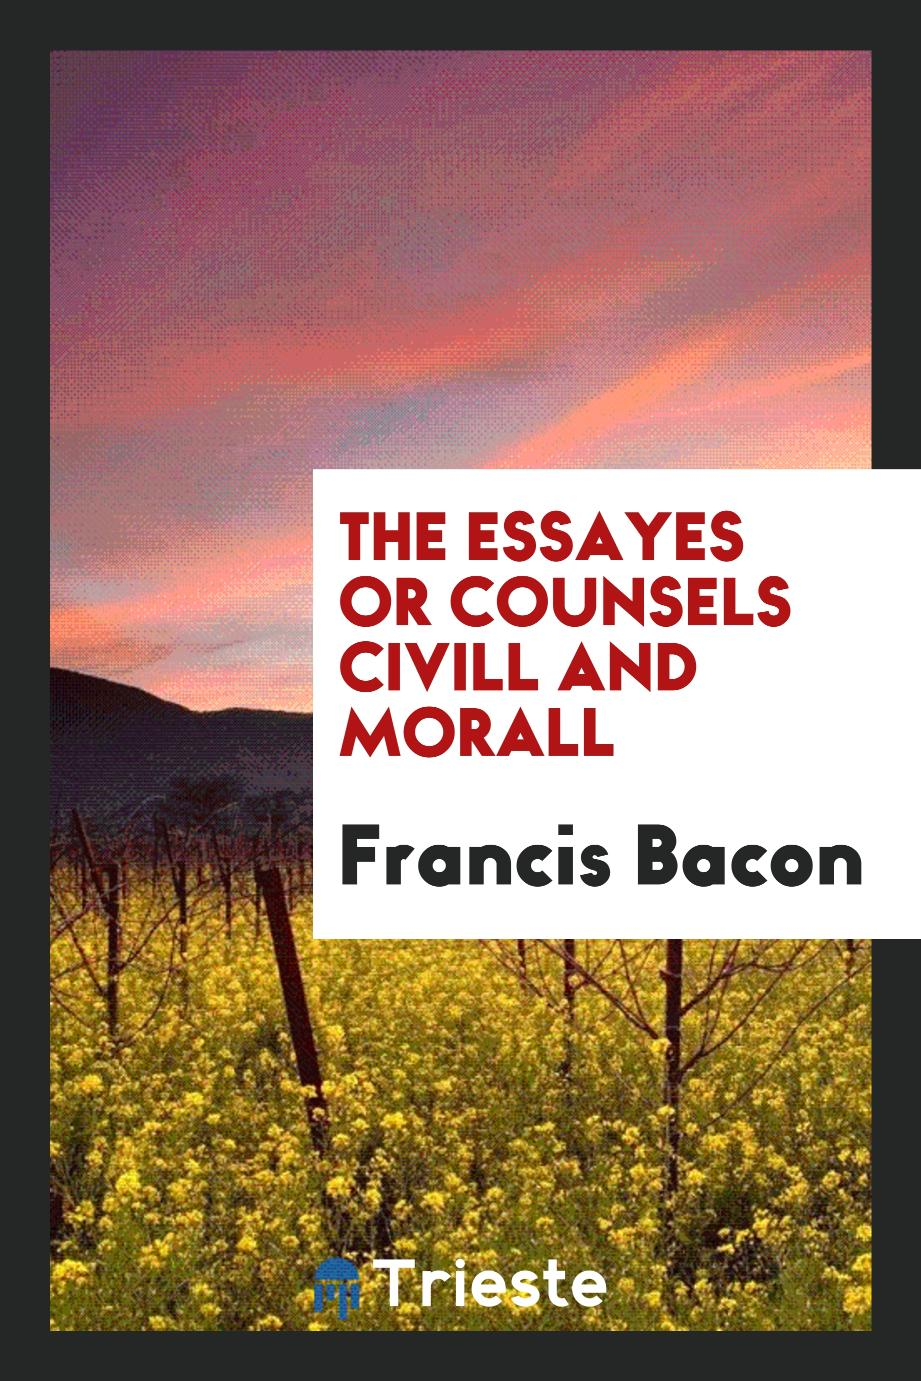 The essayes or counsels civill and morall